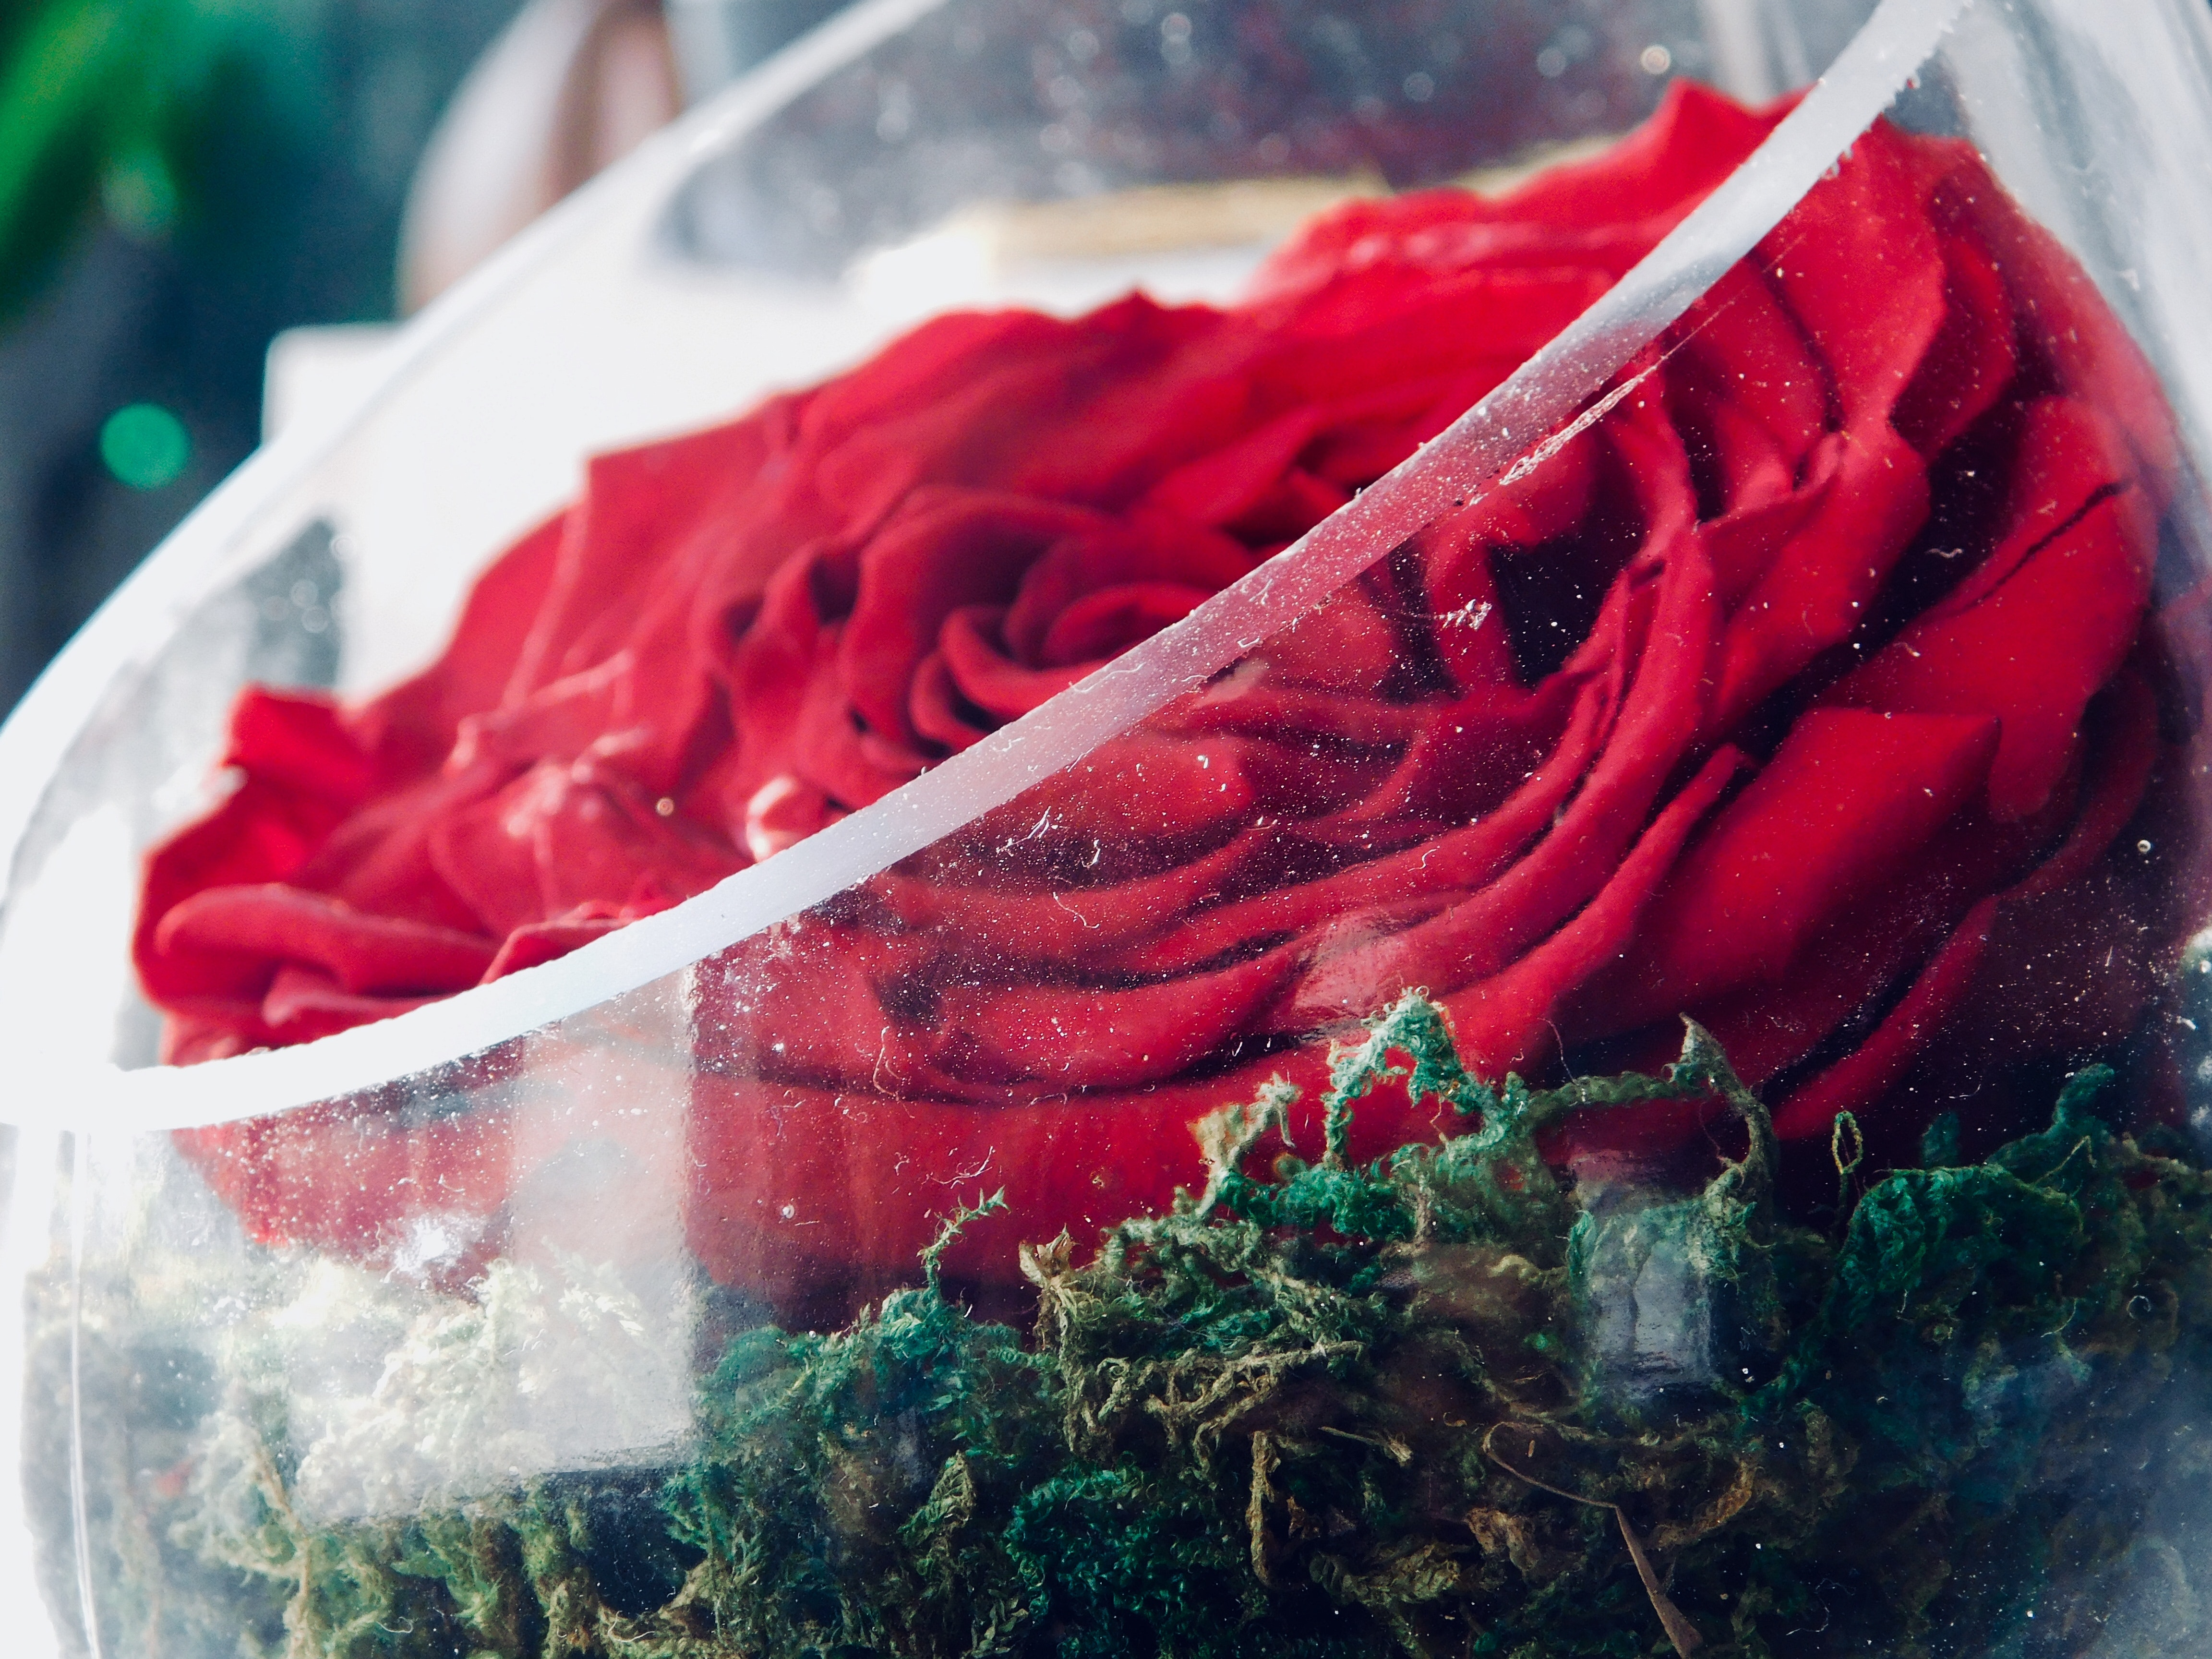 Free stock photo of beautiful flowers crystal glass red rose free download izmirmasajfo